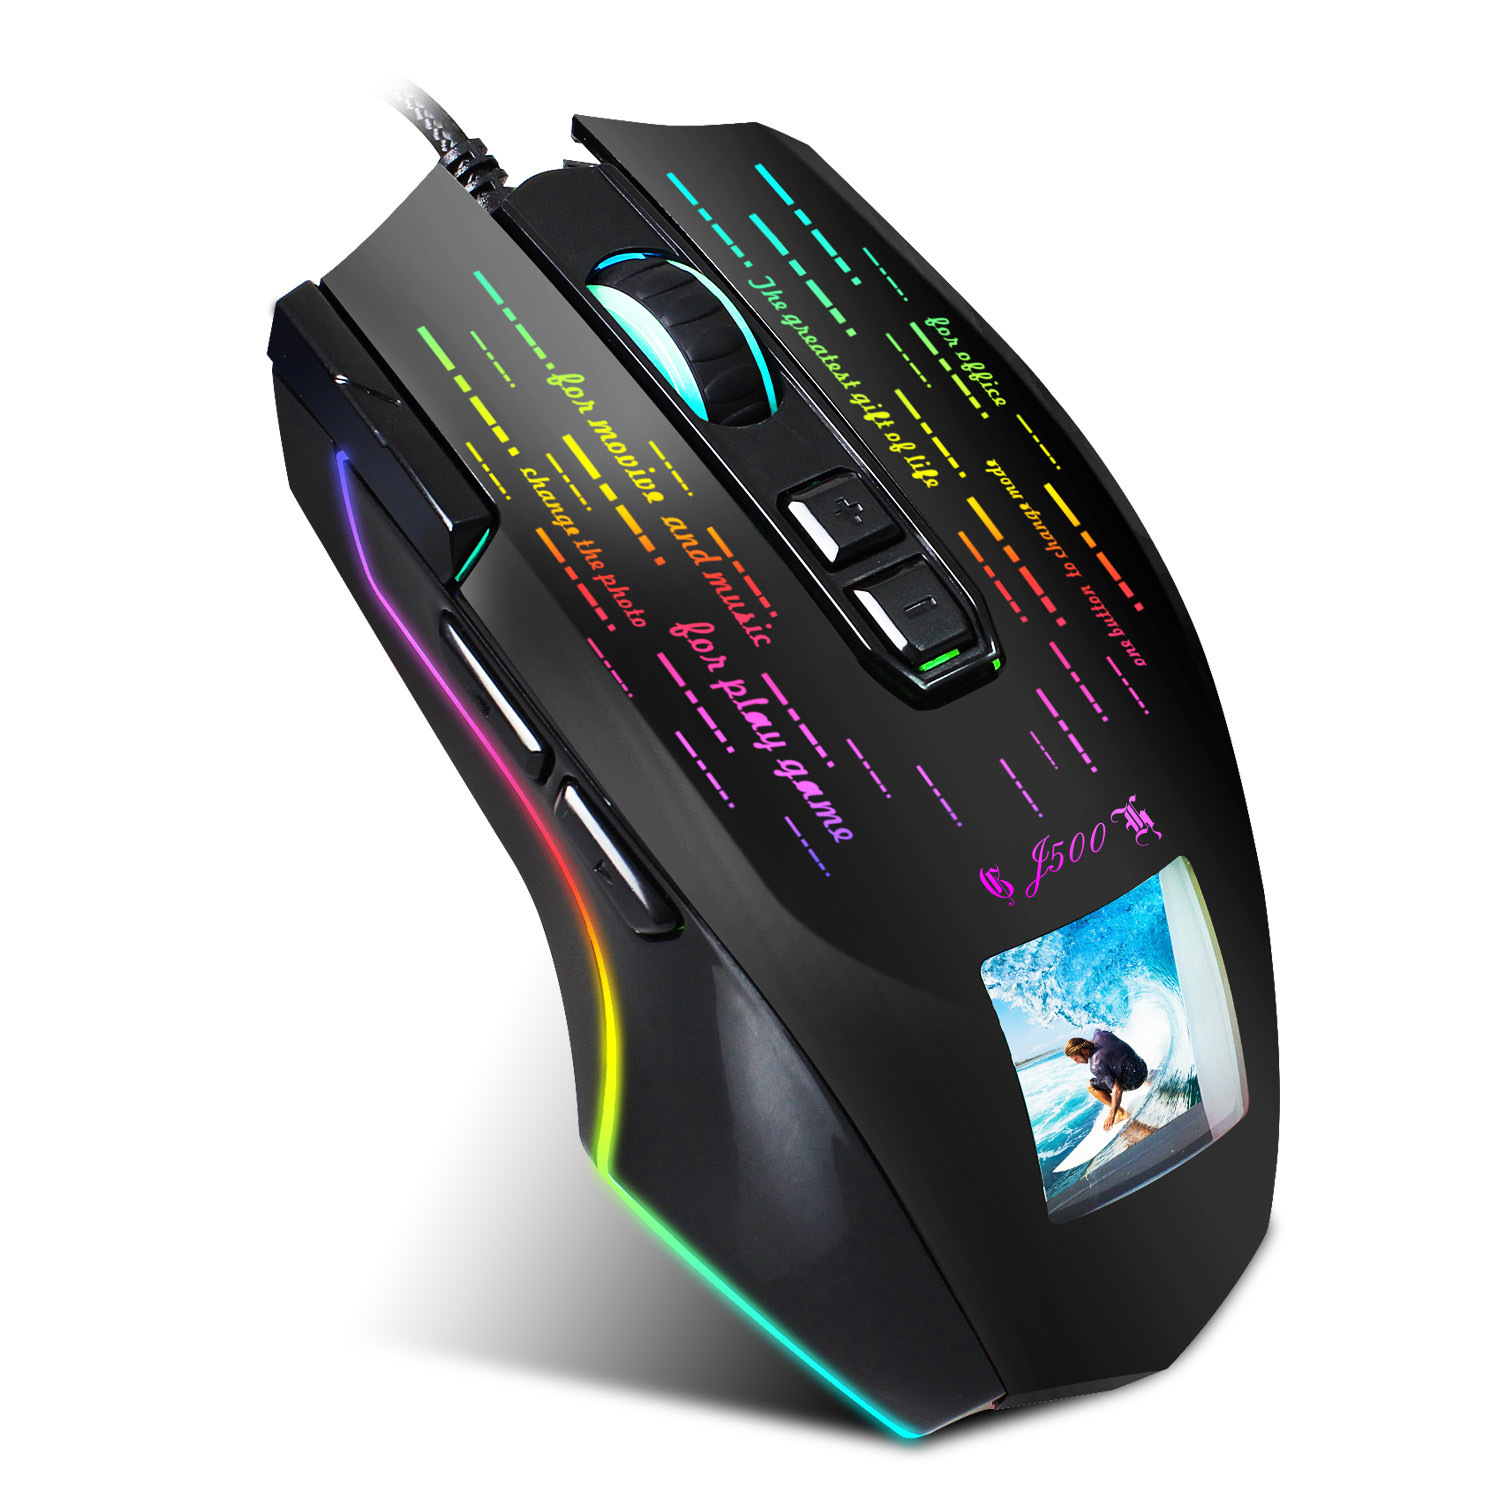 7 Button Wried Optical Mice RGB Gaming Mouse Gamer Programming <font><b>5000DPI</b></font> USB Computer Backlit Breathe LED for PC Laptop image